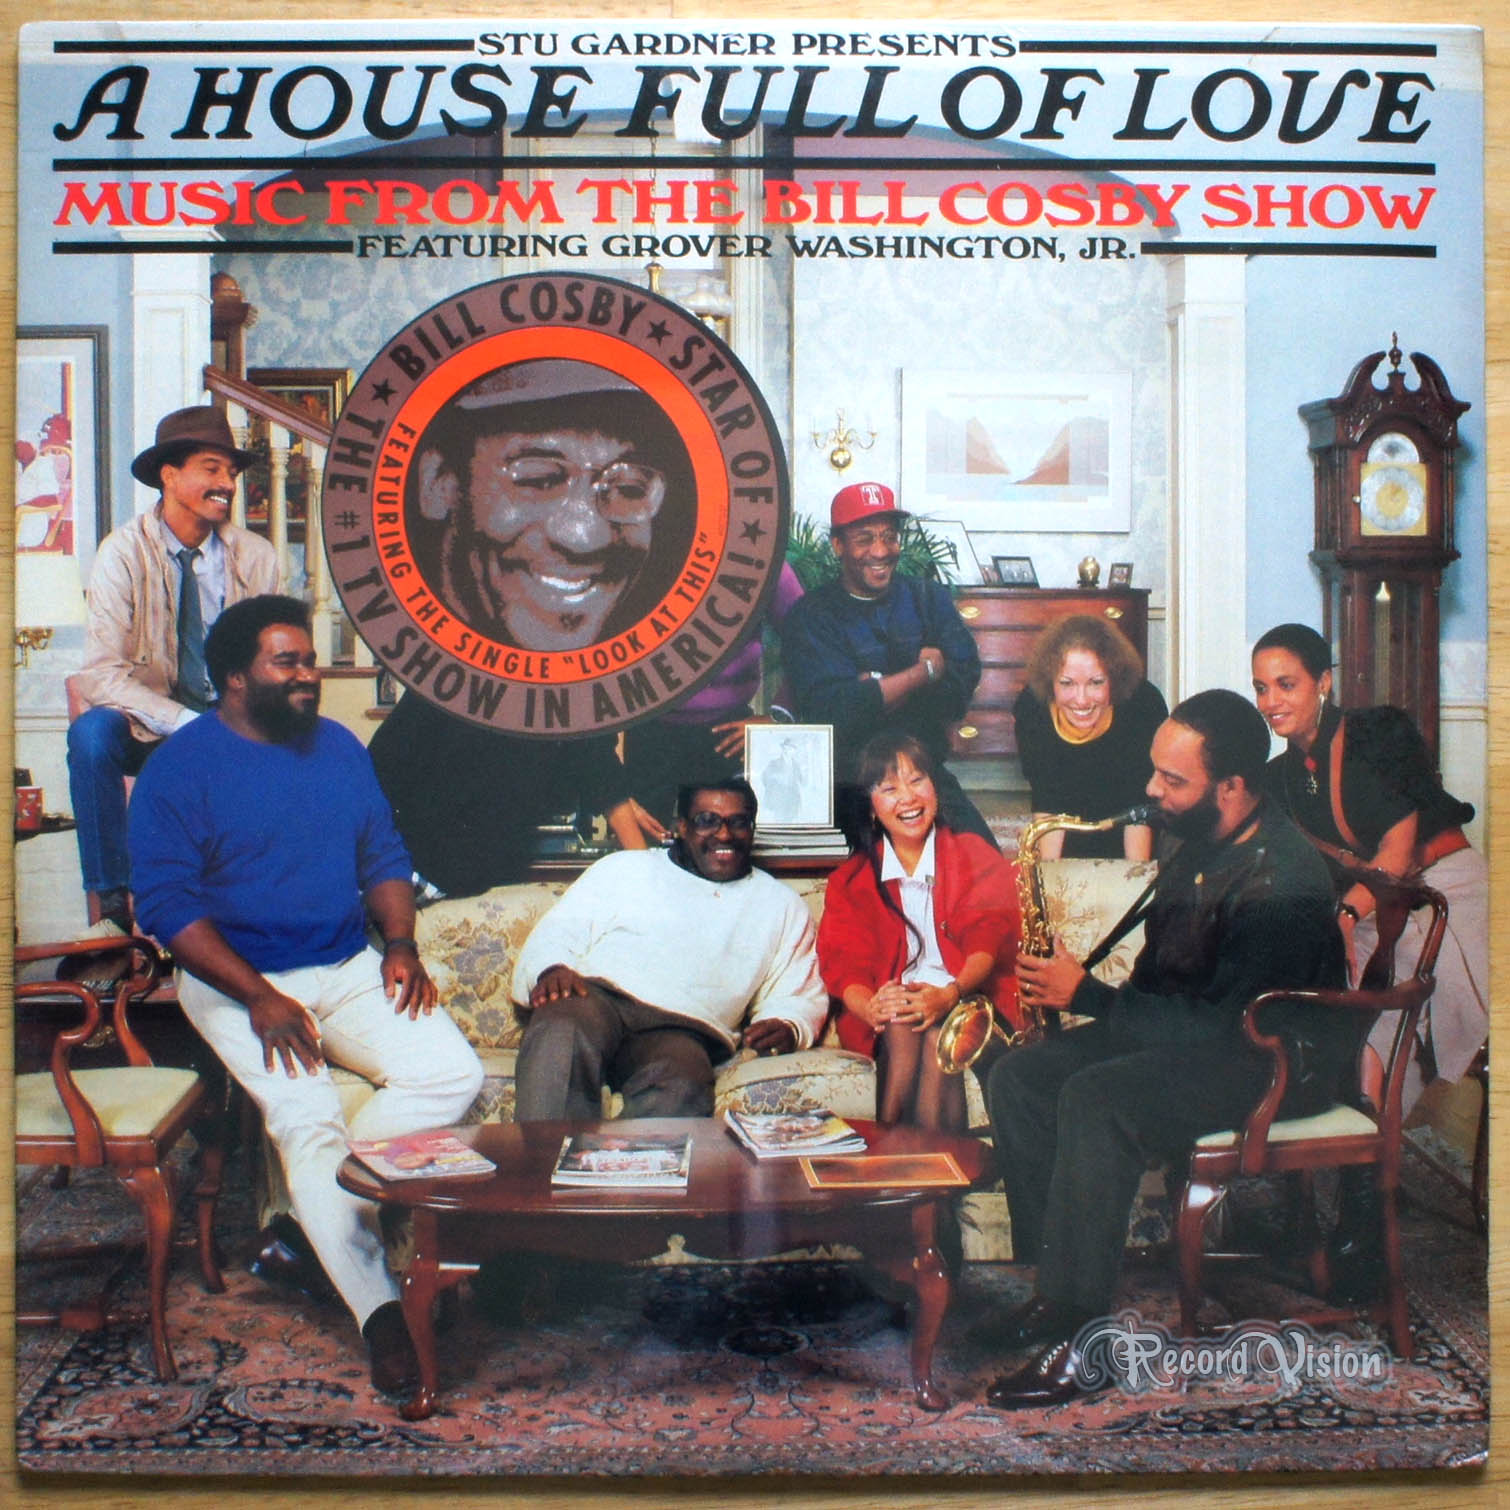 GROVER WASHINGTON, JR. - A House Full of Love - 33T